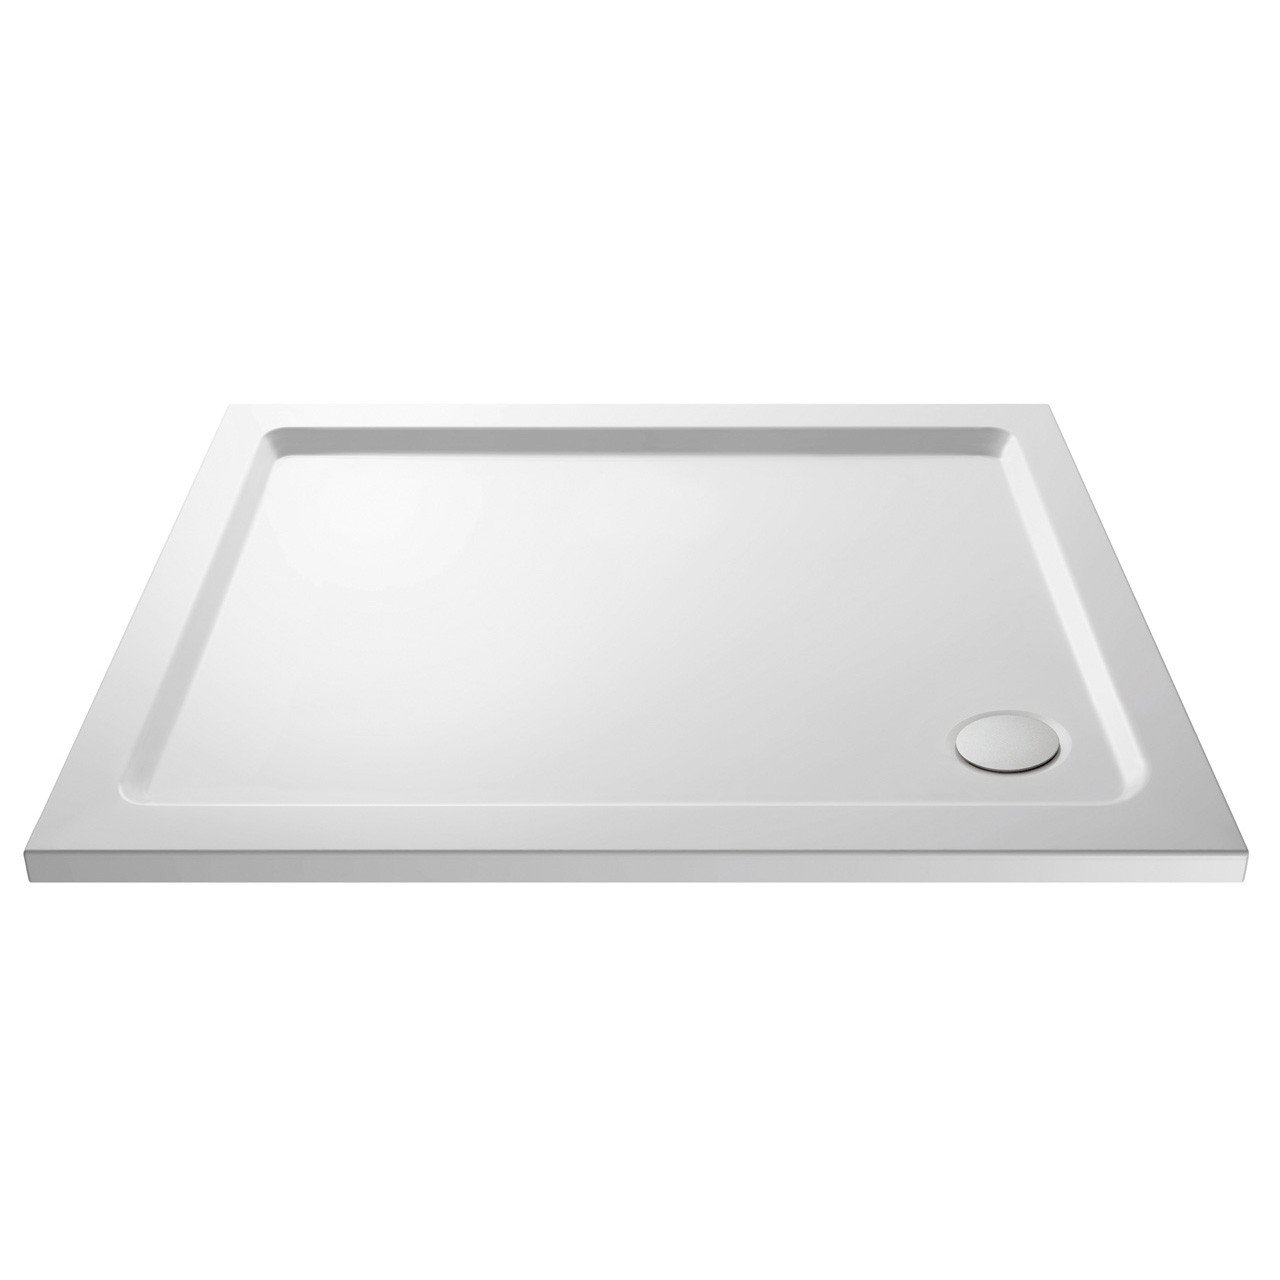 Premiere Pearlstone 900mm x 760mm x 40mm Rectangular Shower Tray with Corner Waste - NTP008